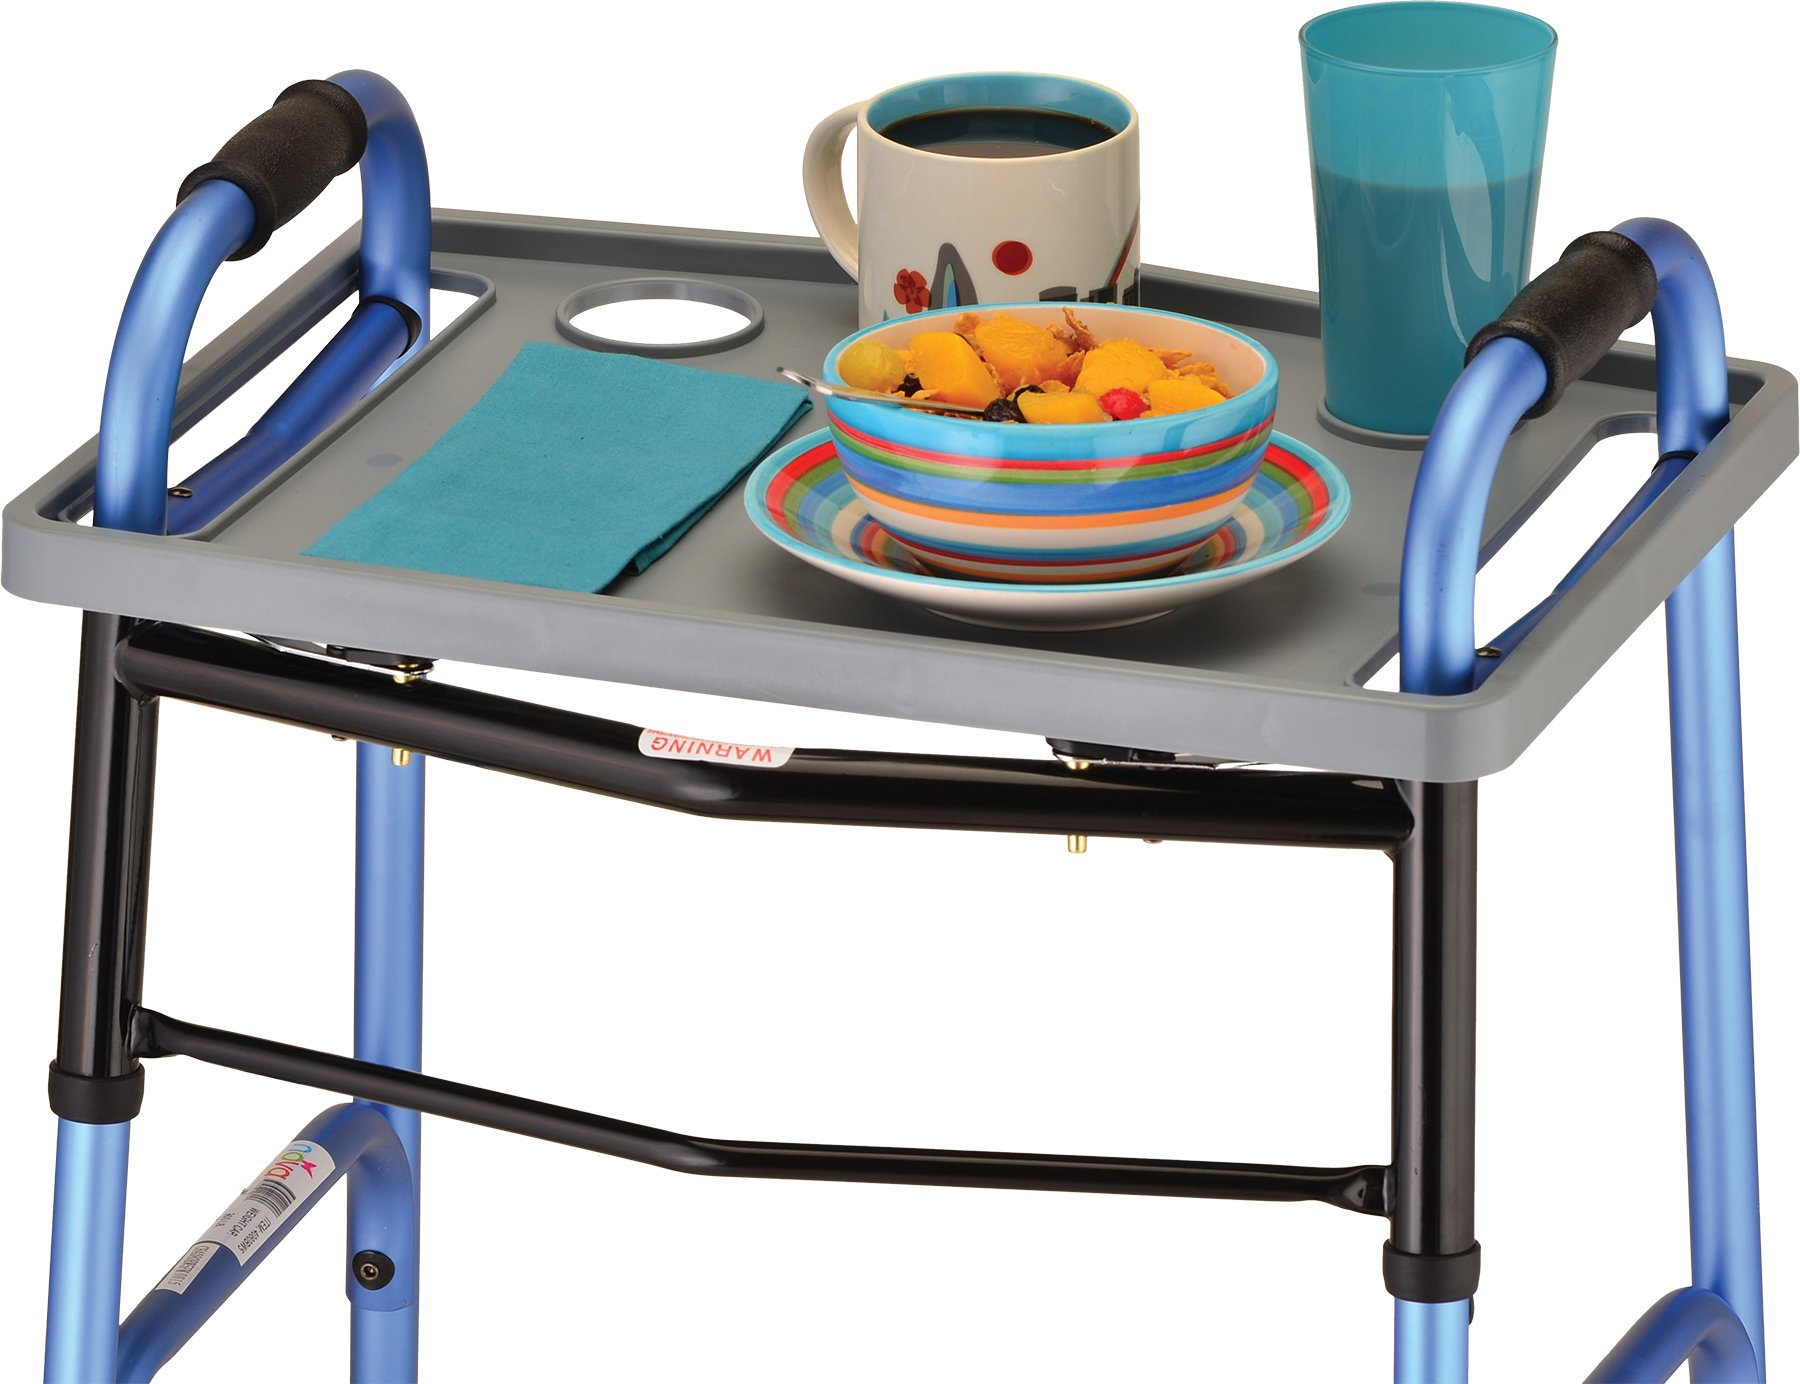 NOVA Walker Tray, Food Tray with 2 Cup Holders for Folding Walker, Universal Fit by NOVA Medical Products